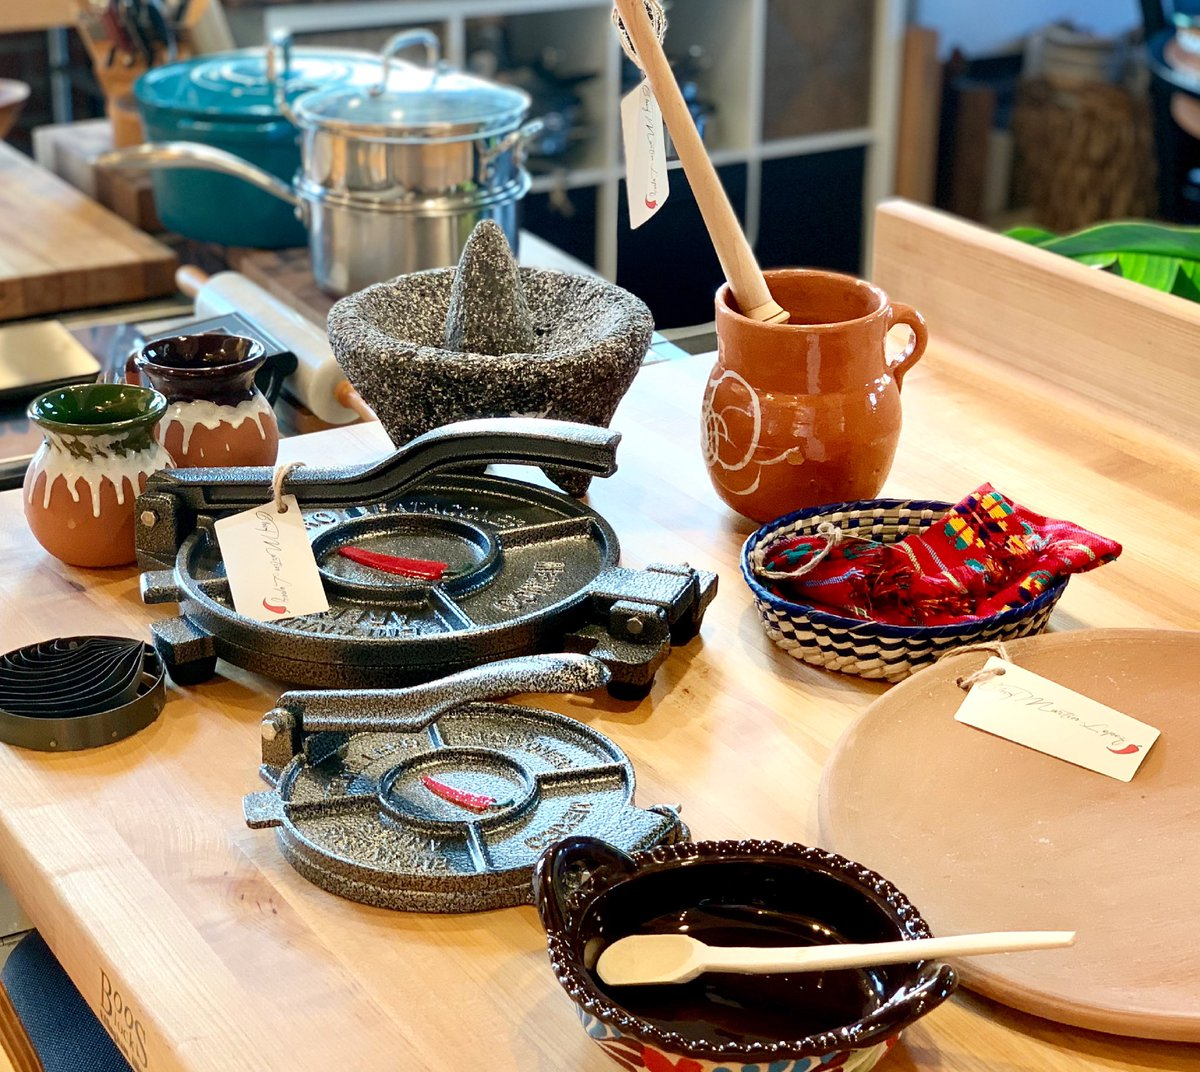 Chef Martin Lopez On Twitter We Are About To Bring You Mexico To Your Table Chef Martin Lopez Kitchenware Food Lineup Https T Co Jl7jtkridu Chefmartinlopez Authentic Mexican Kitchen Spices Ingredients Kitchenware Bakerymixes Https